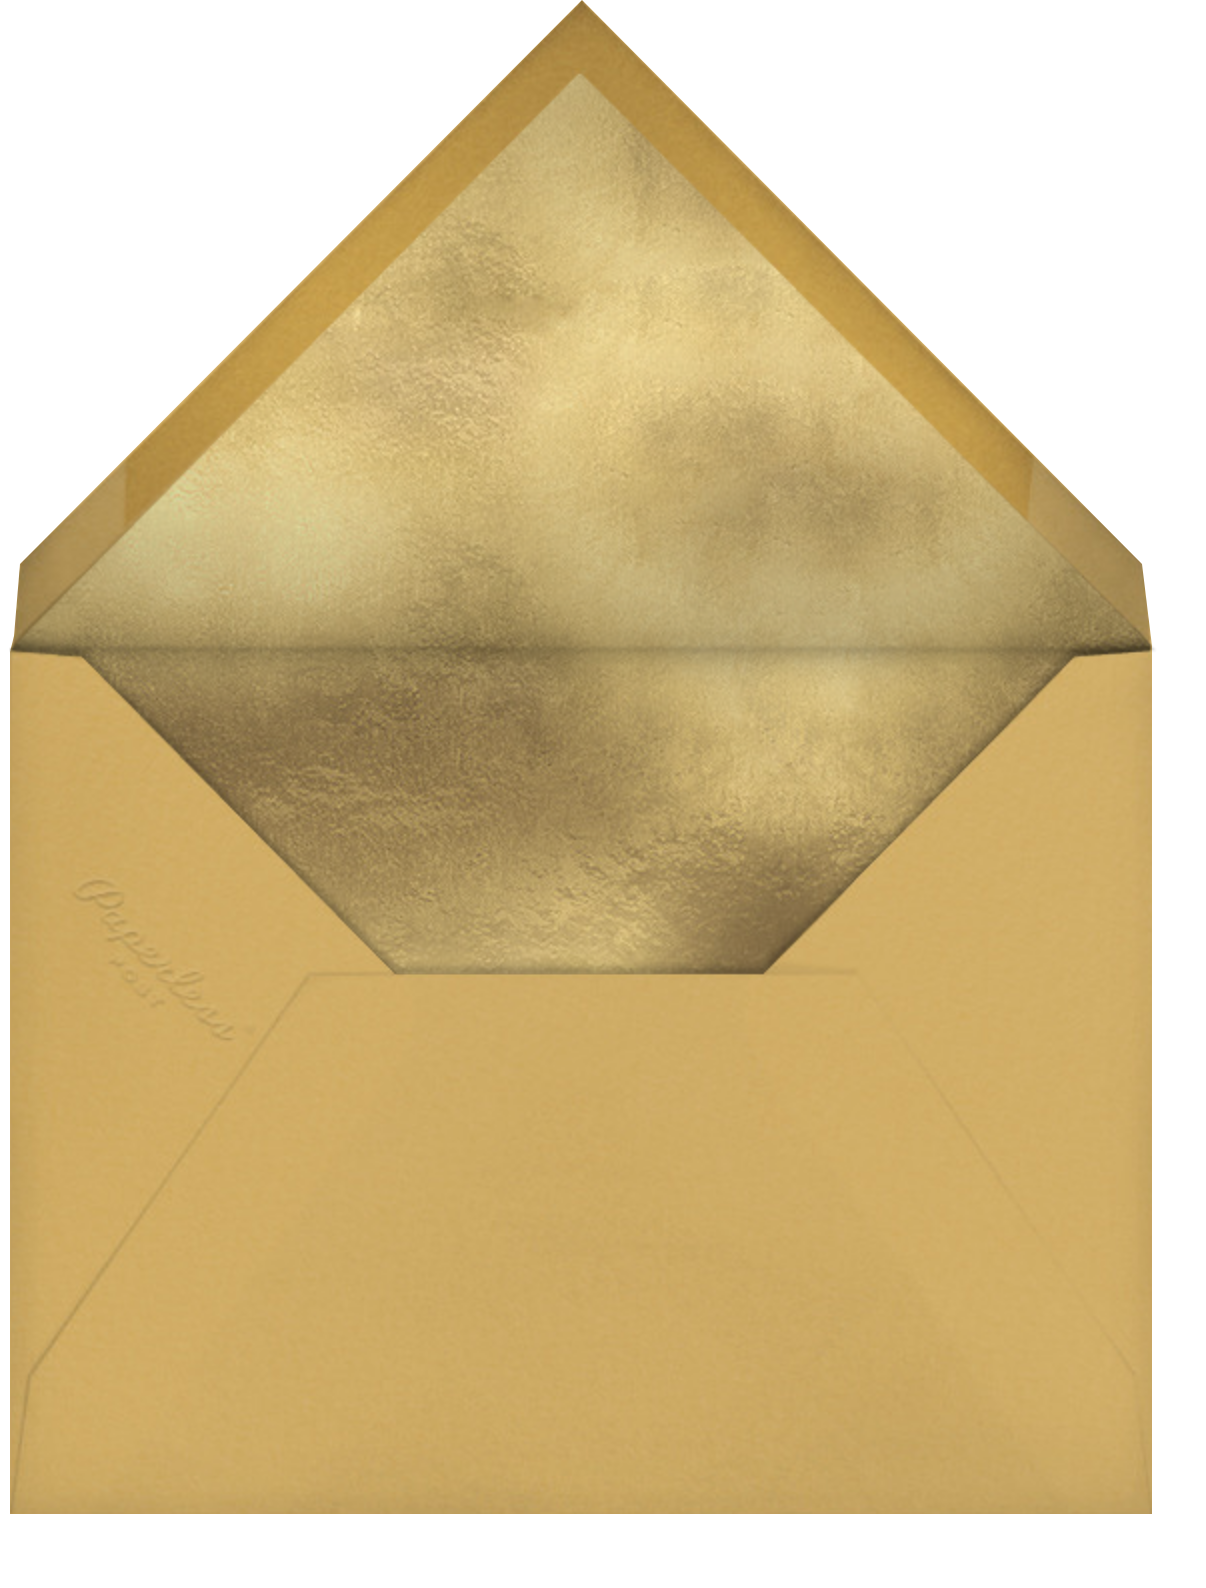 Fillet - Palm - Paperless Post - Cocktail party - envelope back